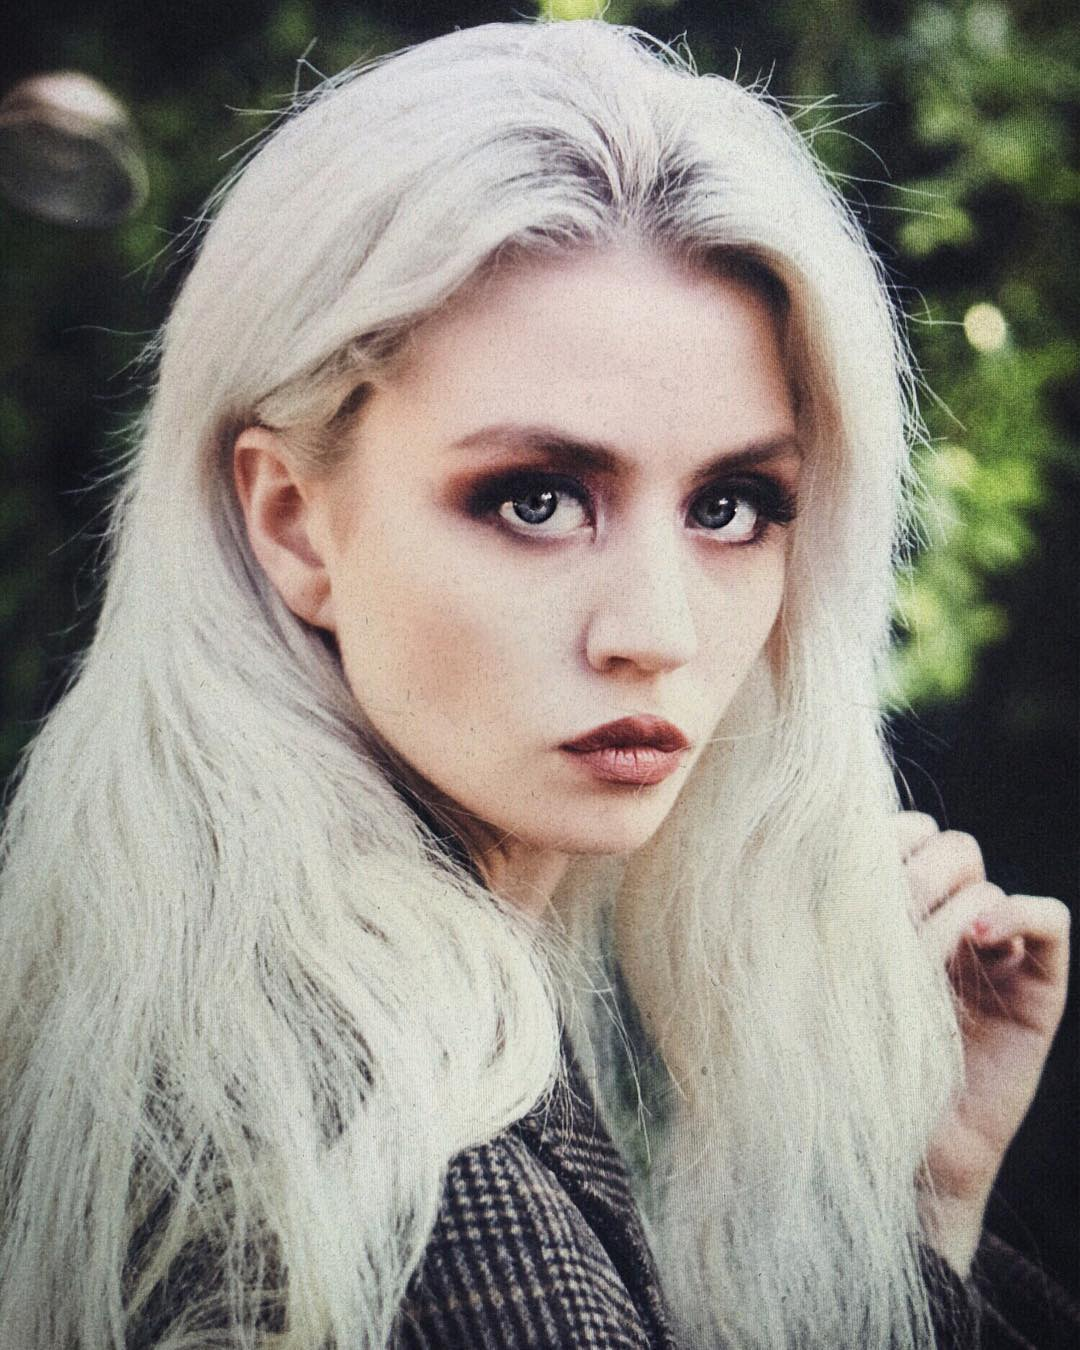 Allison Antm picture of allison harvard